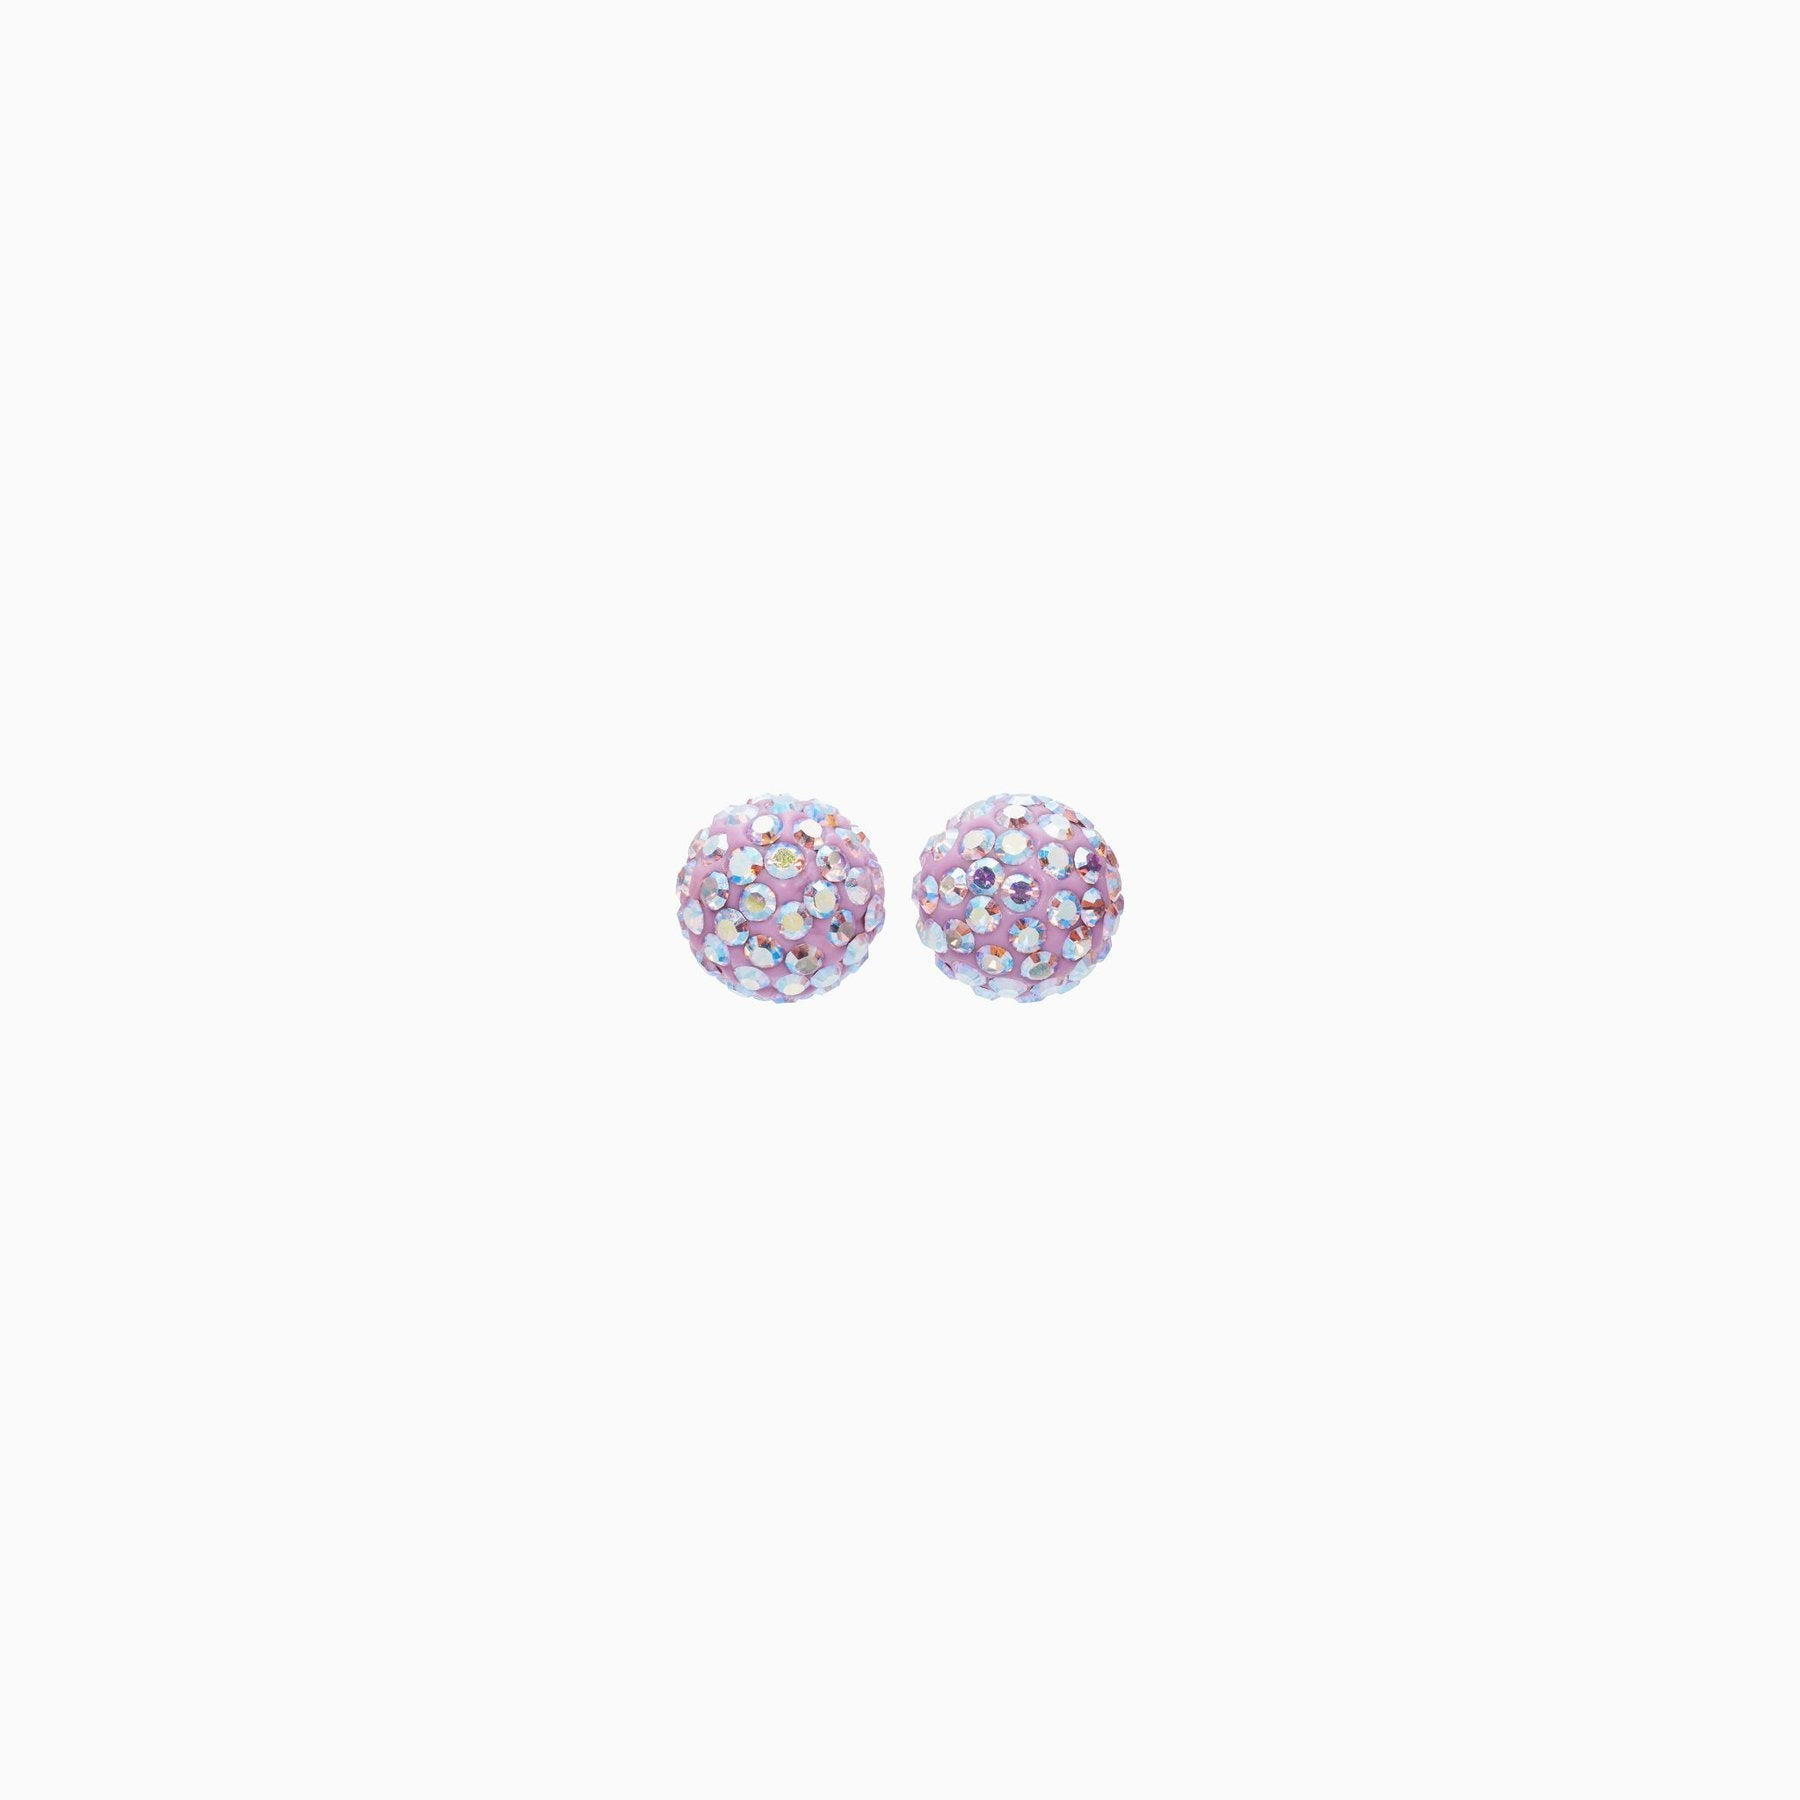 H&B Sparkle Ball™ Stud Earrings - 8mm Lilac